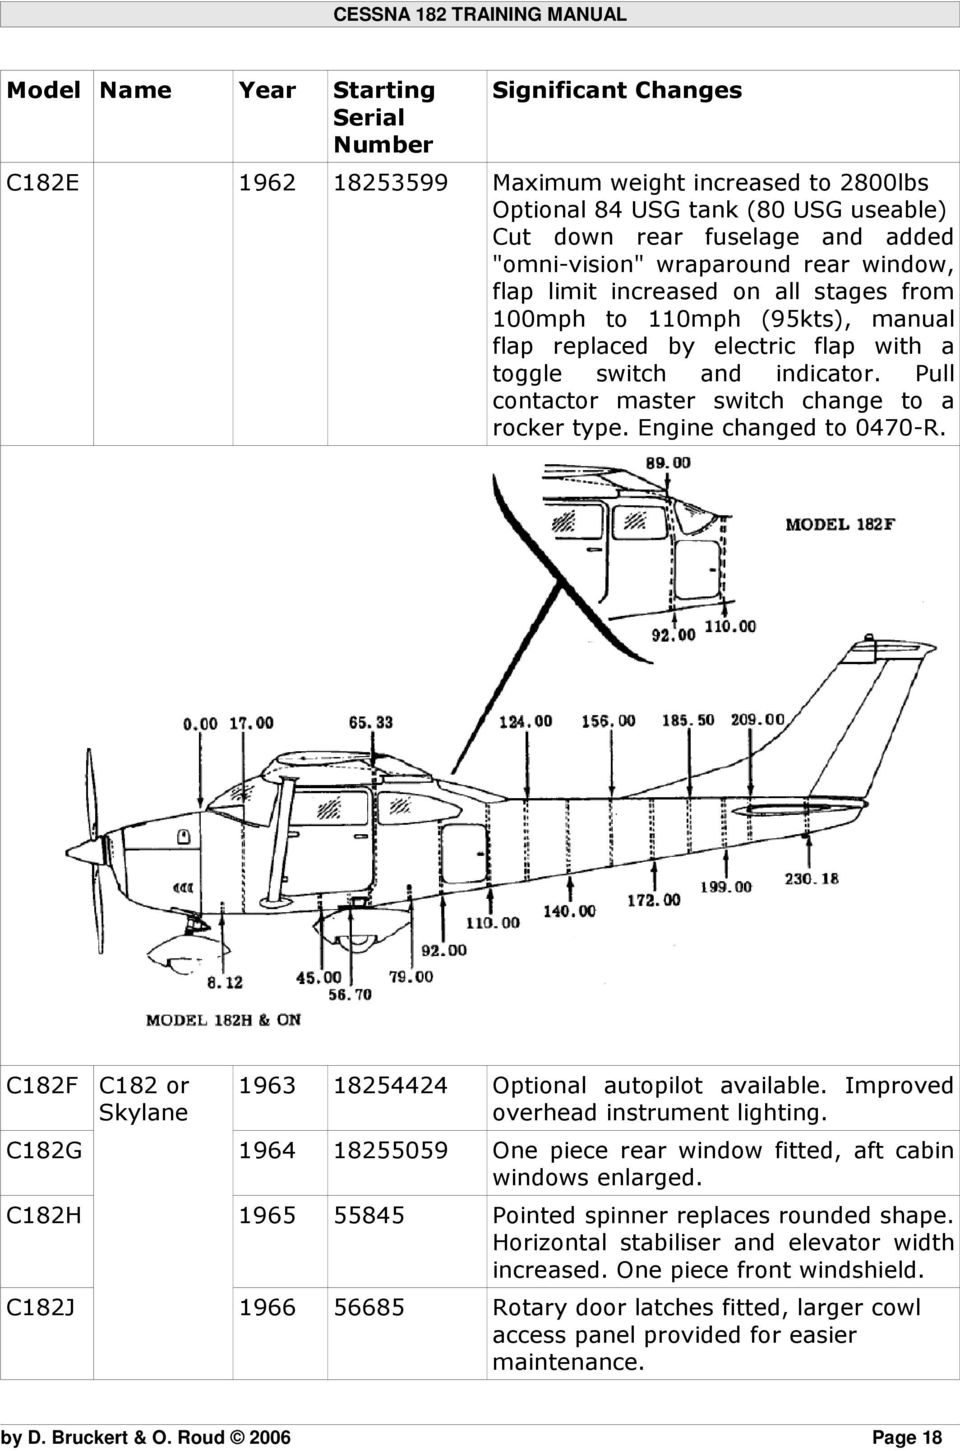 Cessna 182 Training Manual Pdf 1987 Gulfstream Wiring Diagram Pull Contactor Master Switch Change To A Rocker Type Engine Changed 0470 R